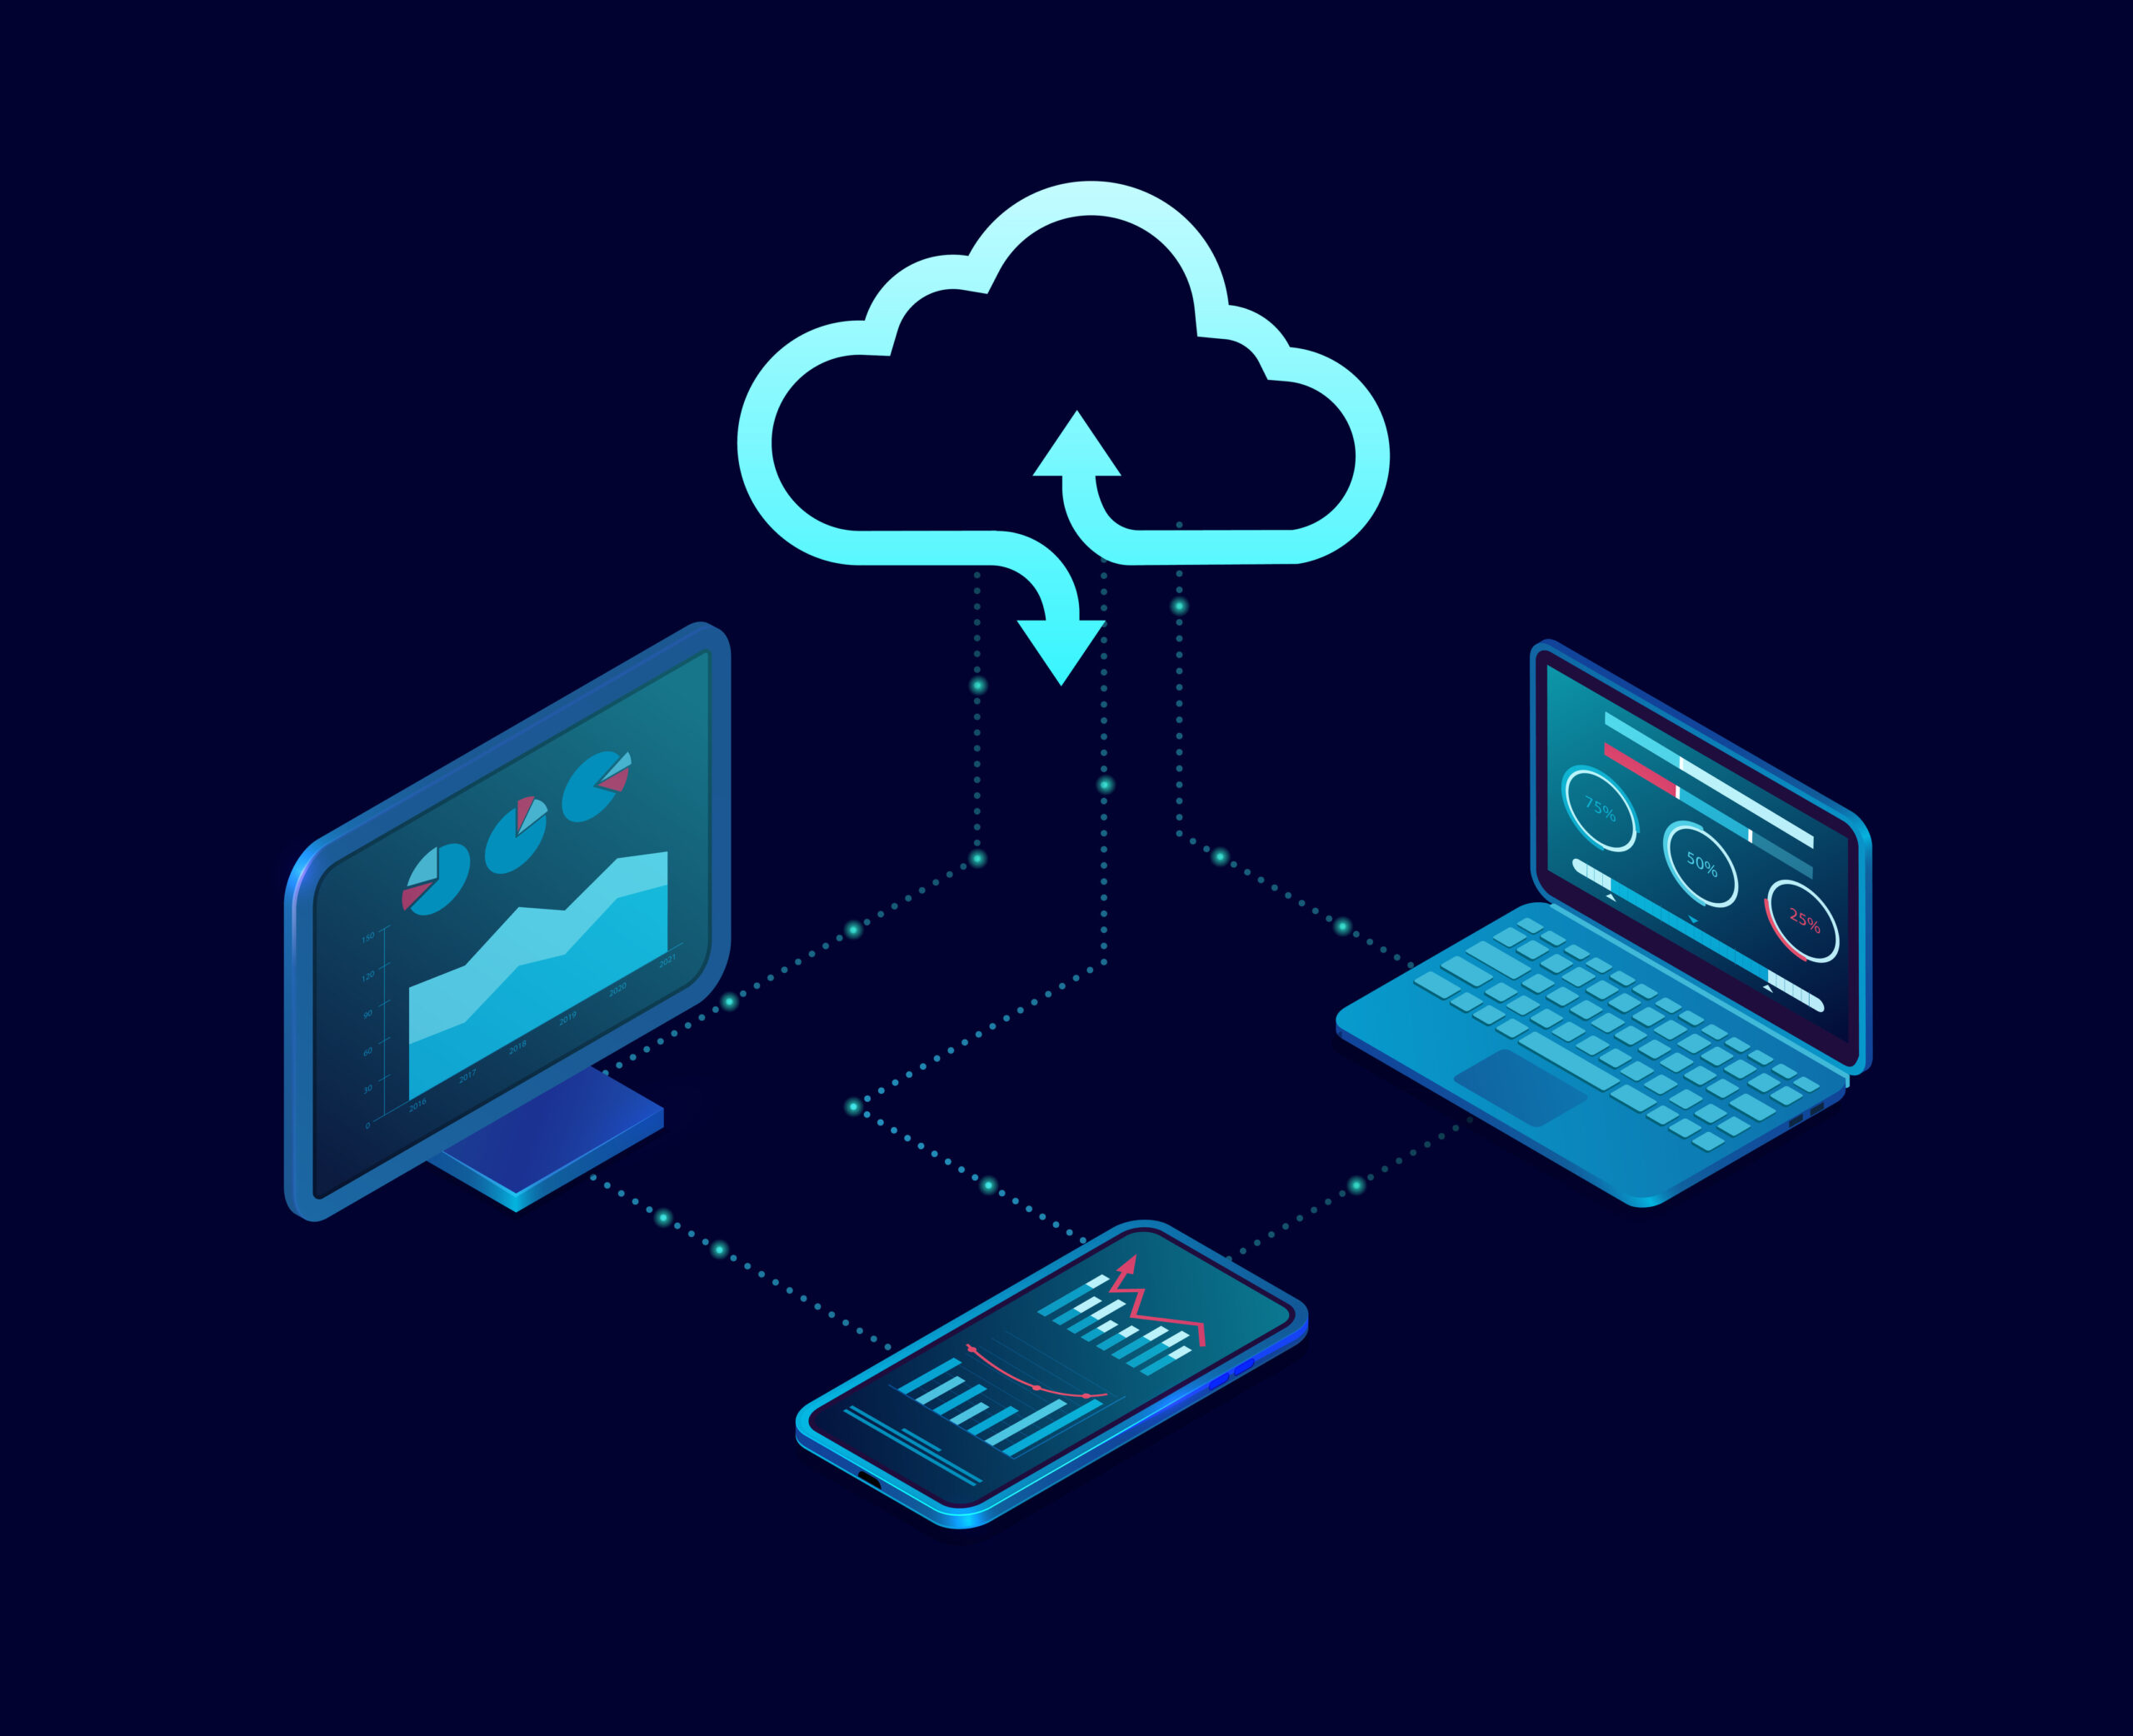 Vector of a desktop computer and mobile devices connected to cloud server service